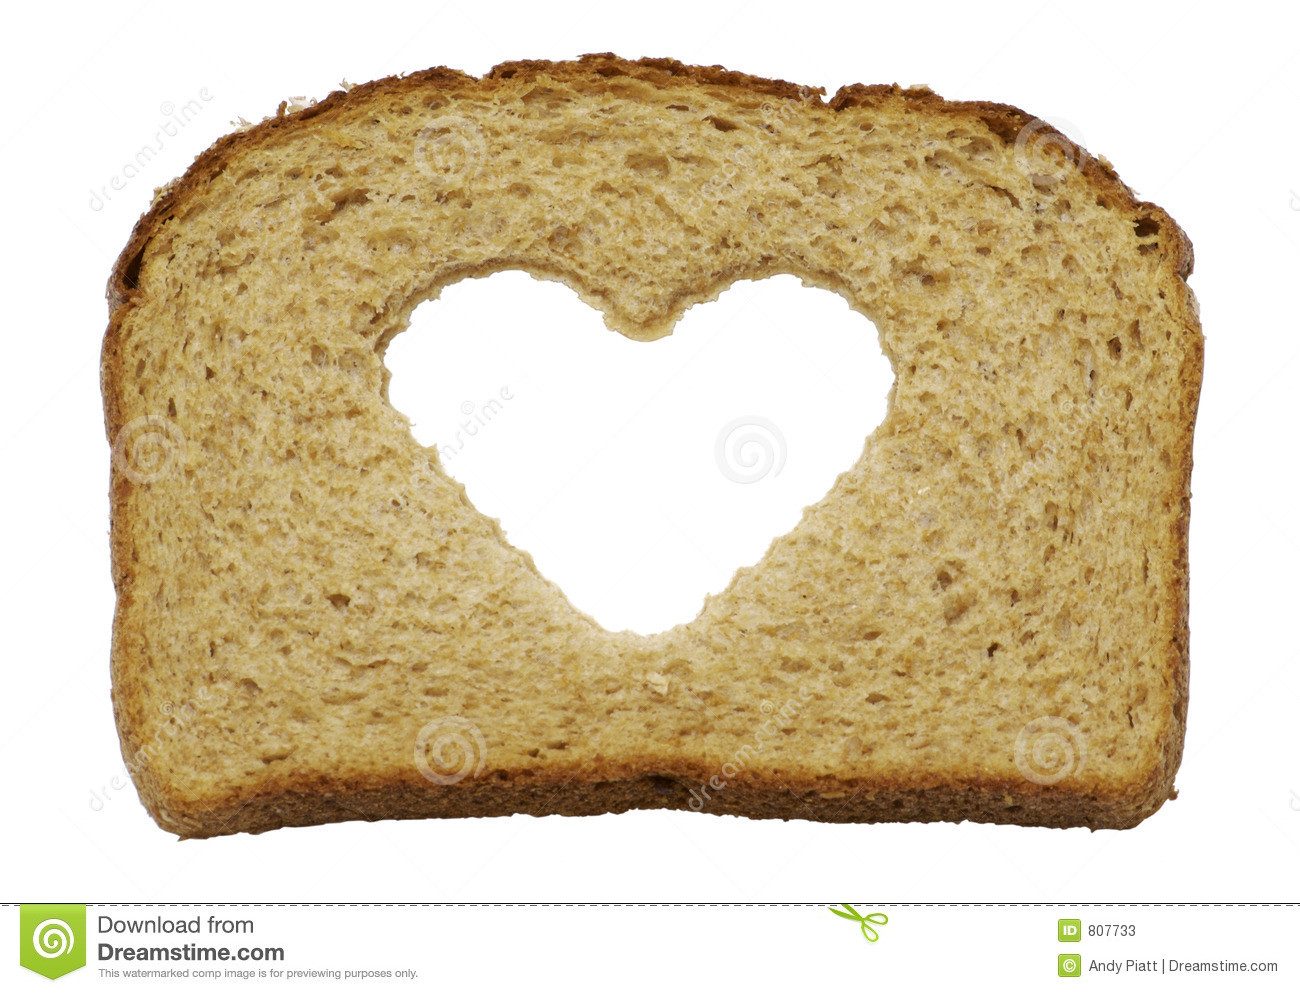 Healthy Whole Wheat Bread  Heart Healthy Whole Wheat Bread Stock s Image